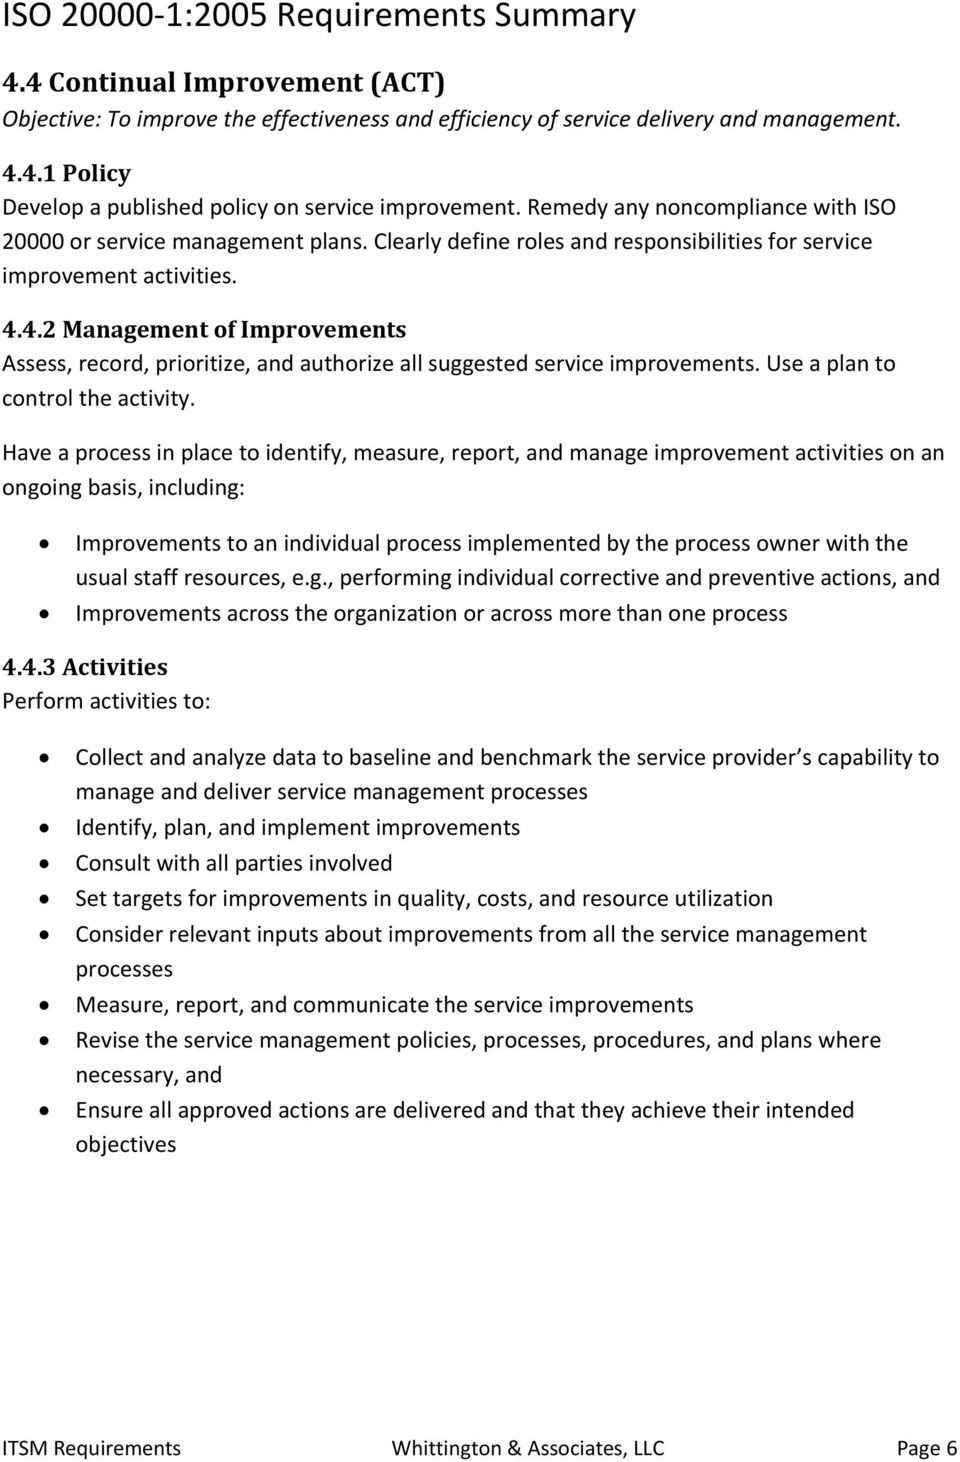 4.2 Management of Improvements Assess, record, prioritize, and authorize all suggested service improvements. Use a plan to control the activity.